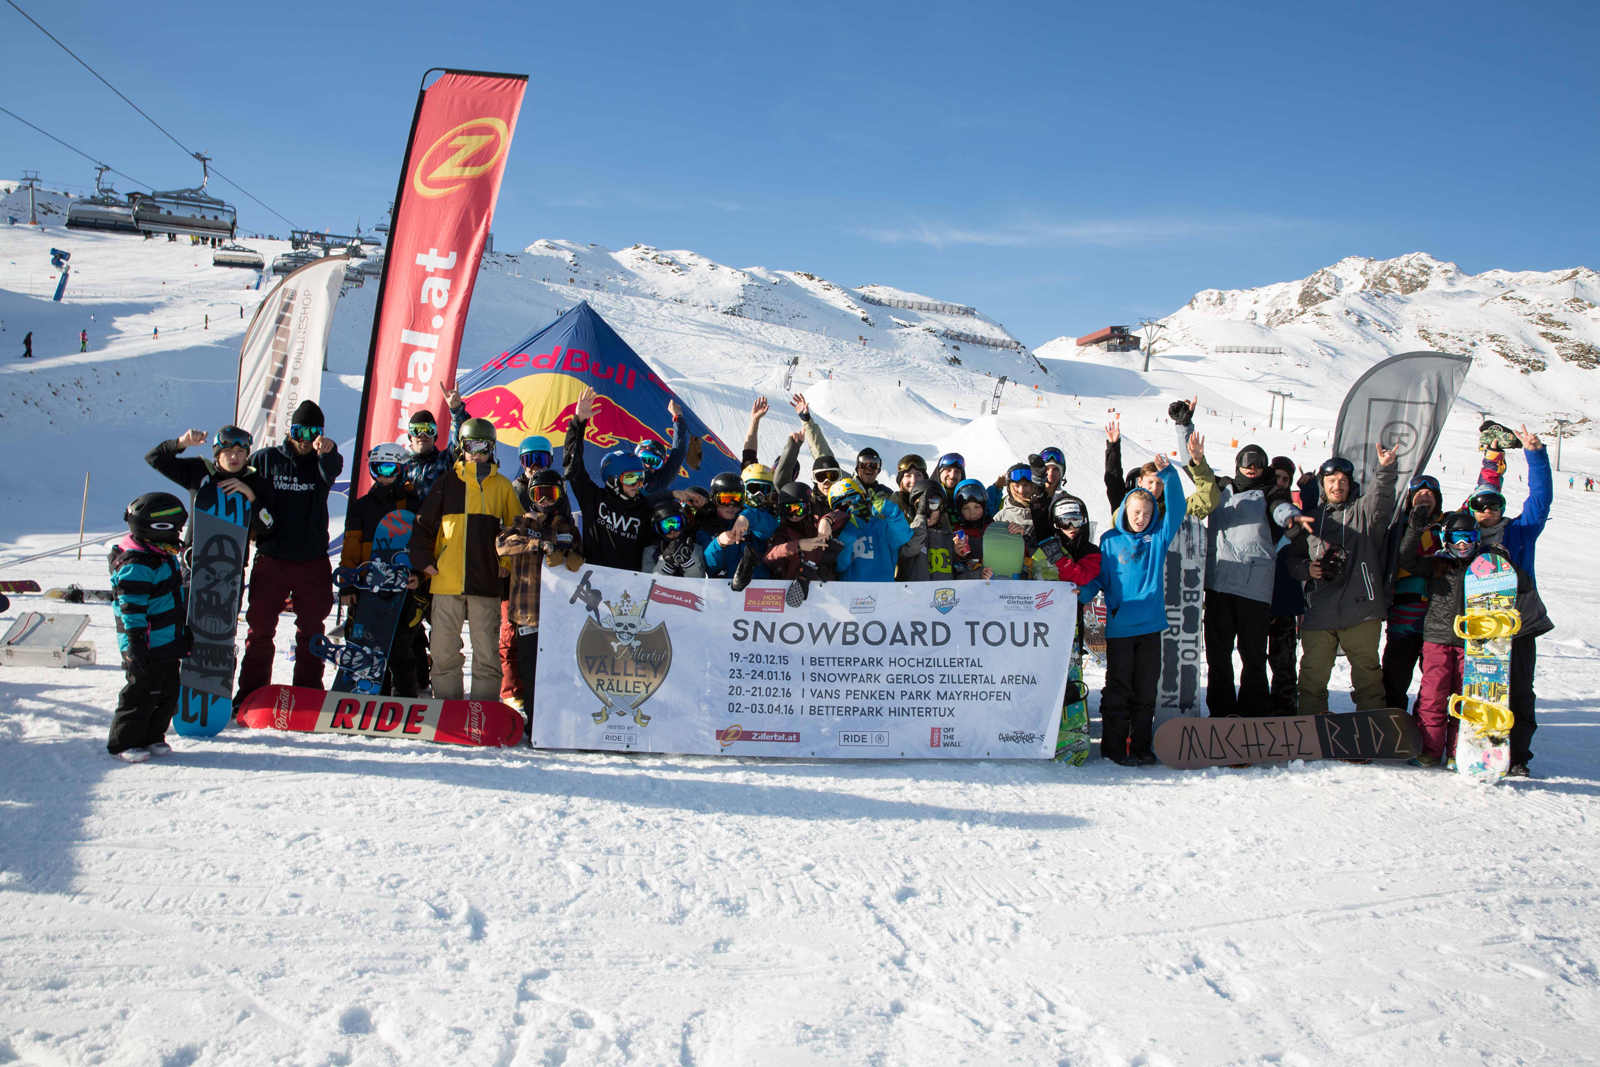 Zillertal VÄLLEY RÄLLEY hosted by Ride Snowboards 2015 / 2016